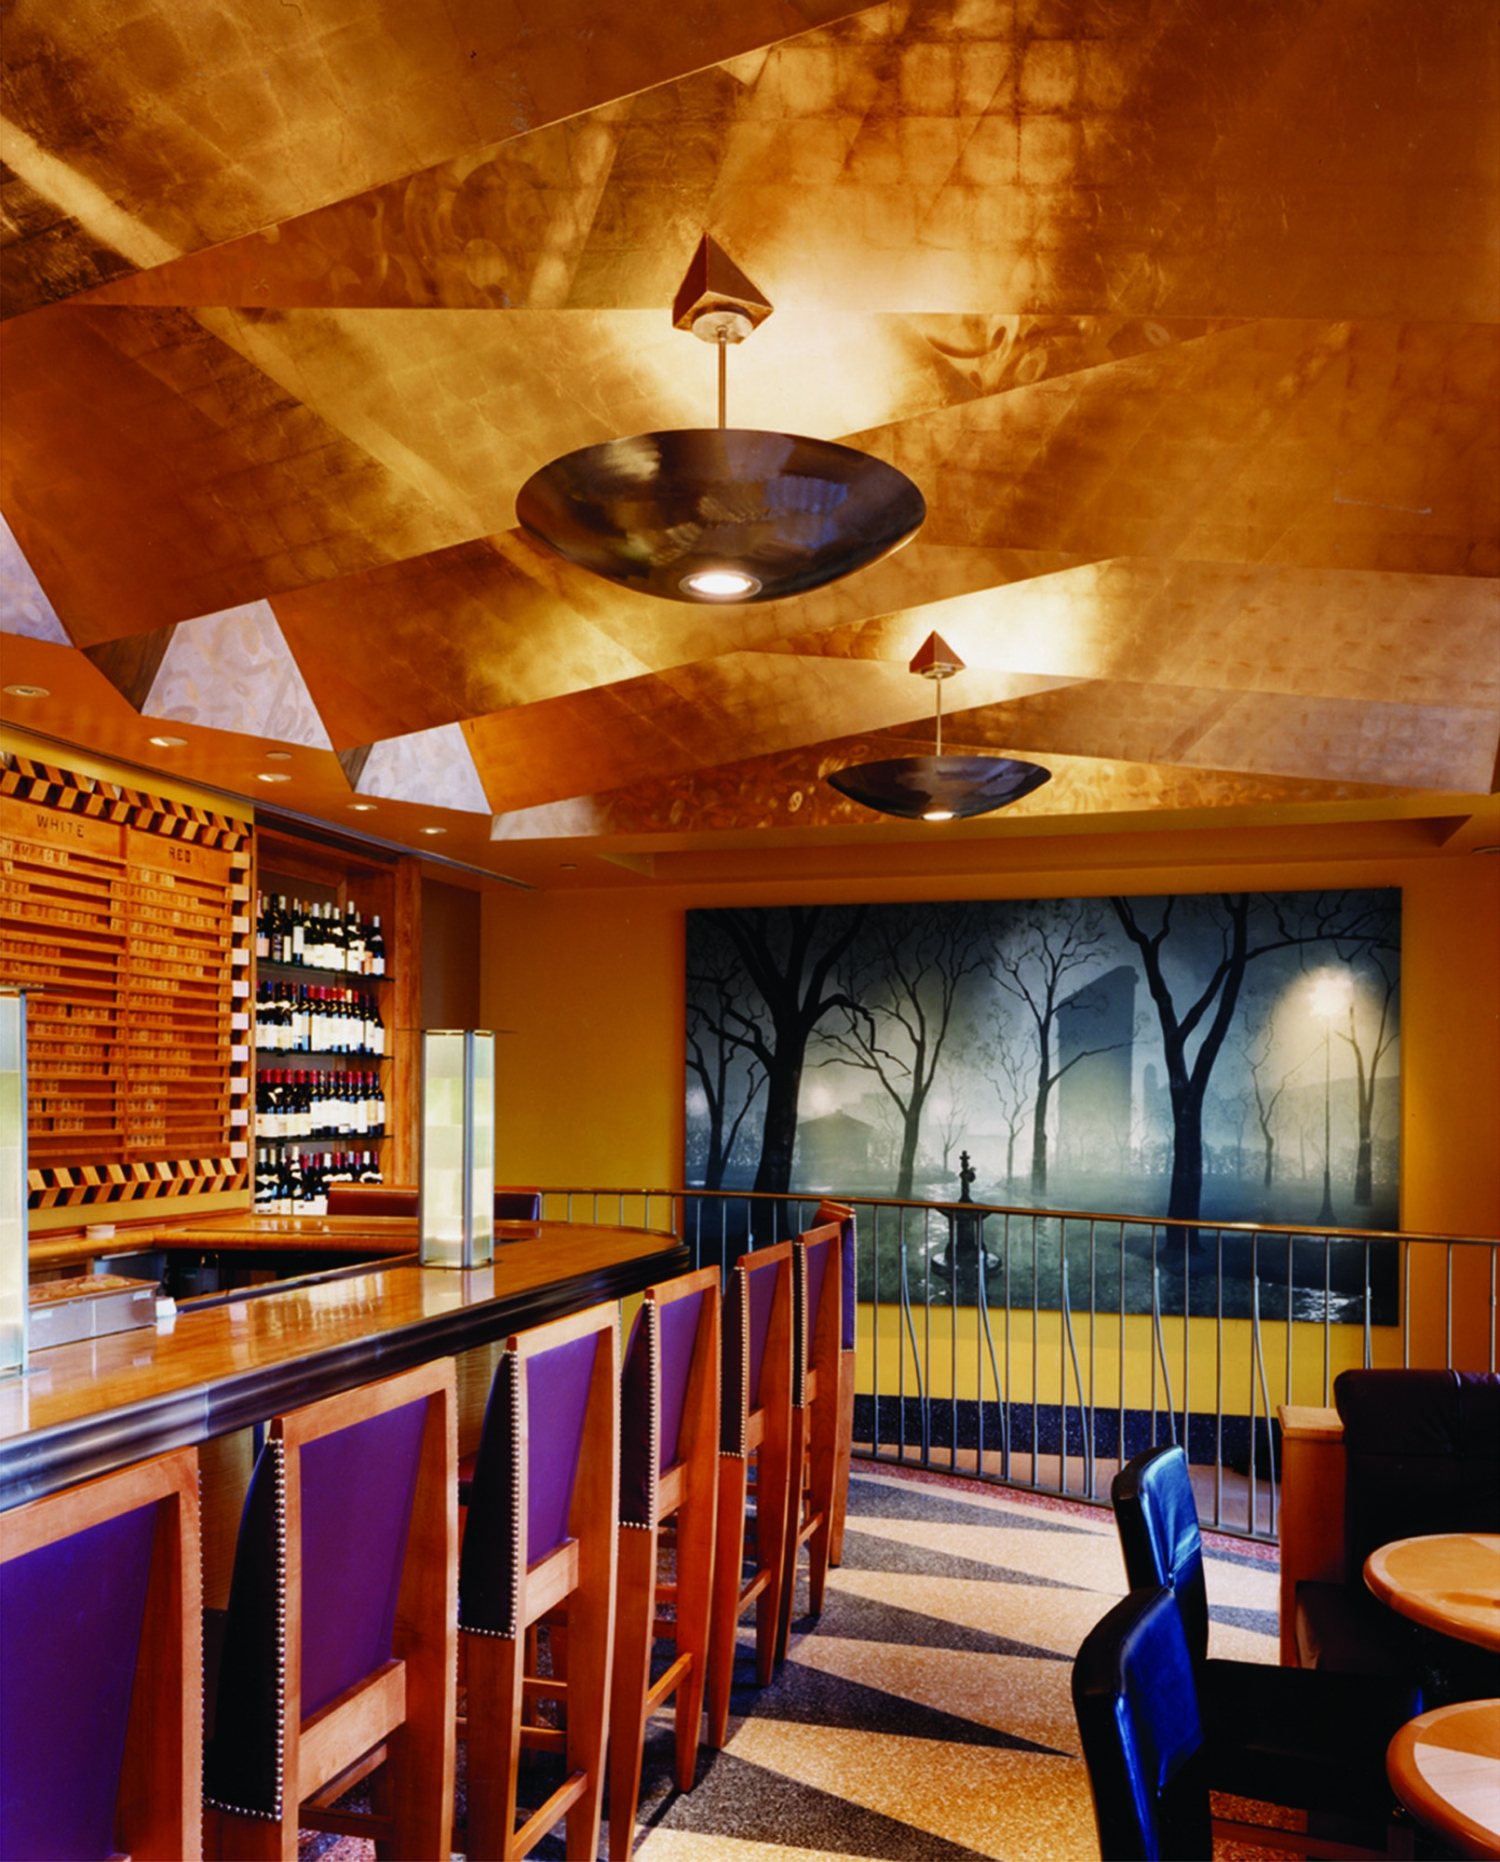 contemporary kitchen light fixtures pull out trash can eleven madison park | bentel & architects/planners ...